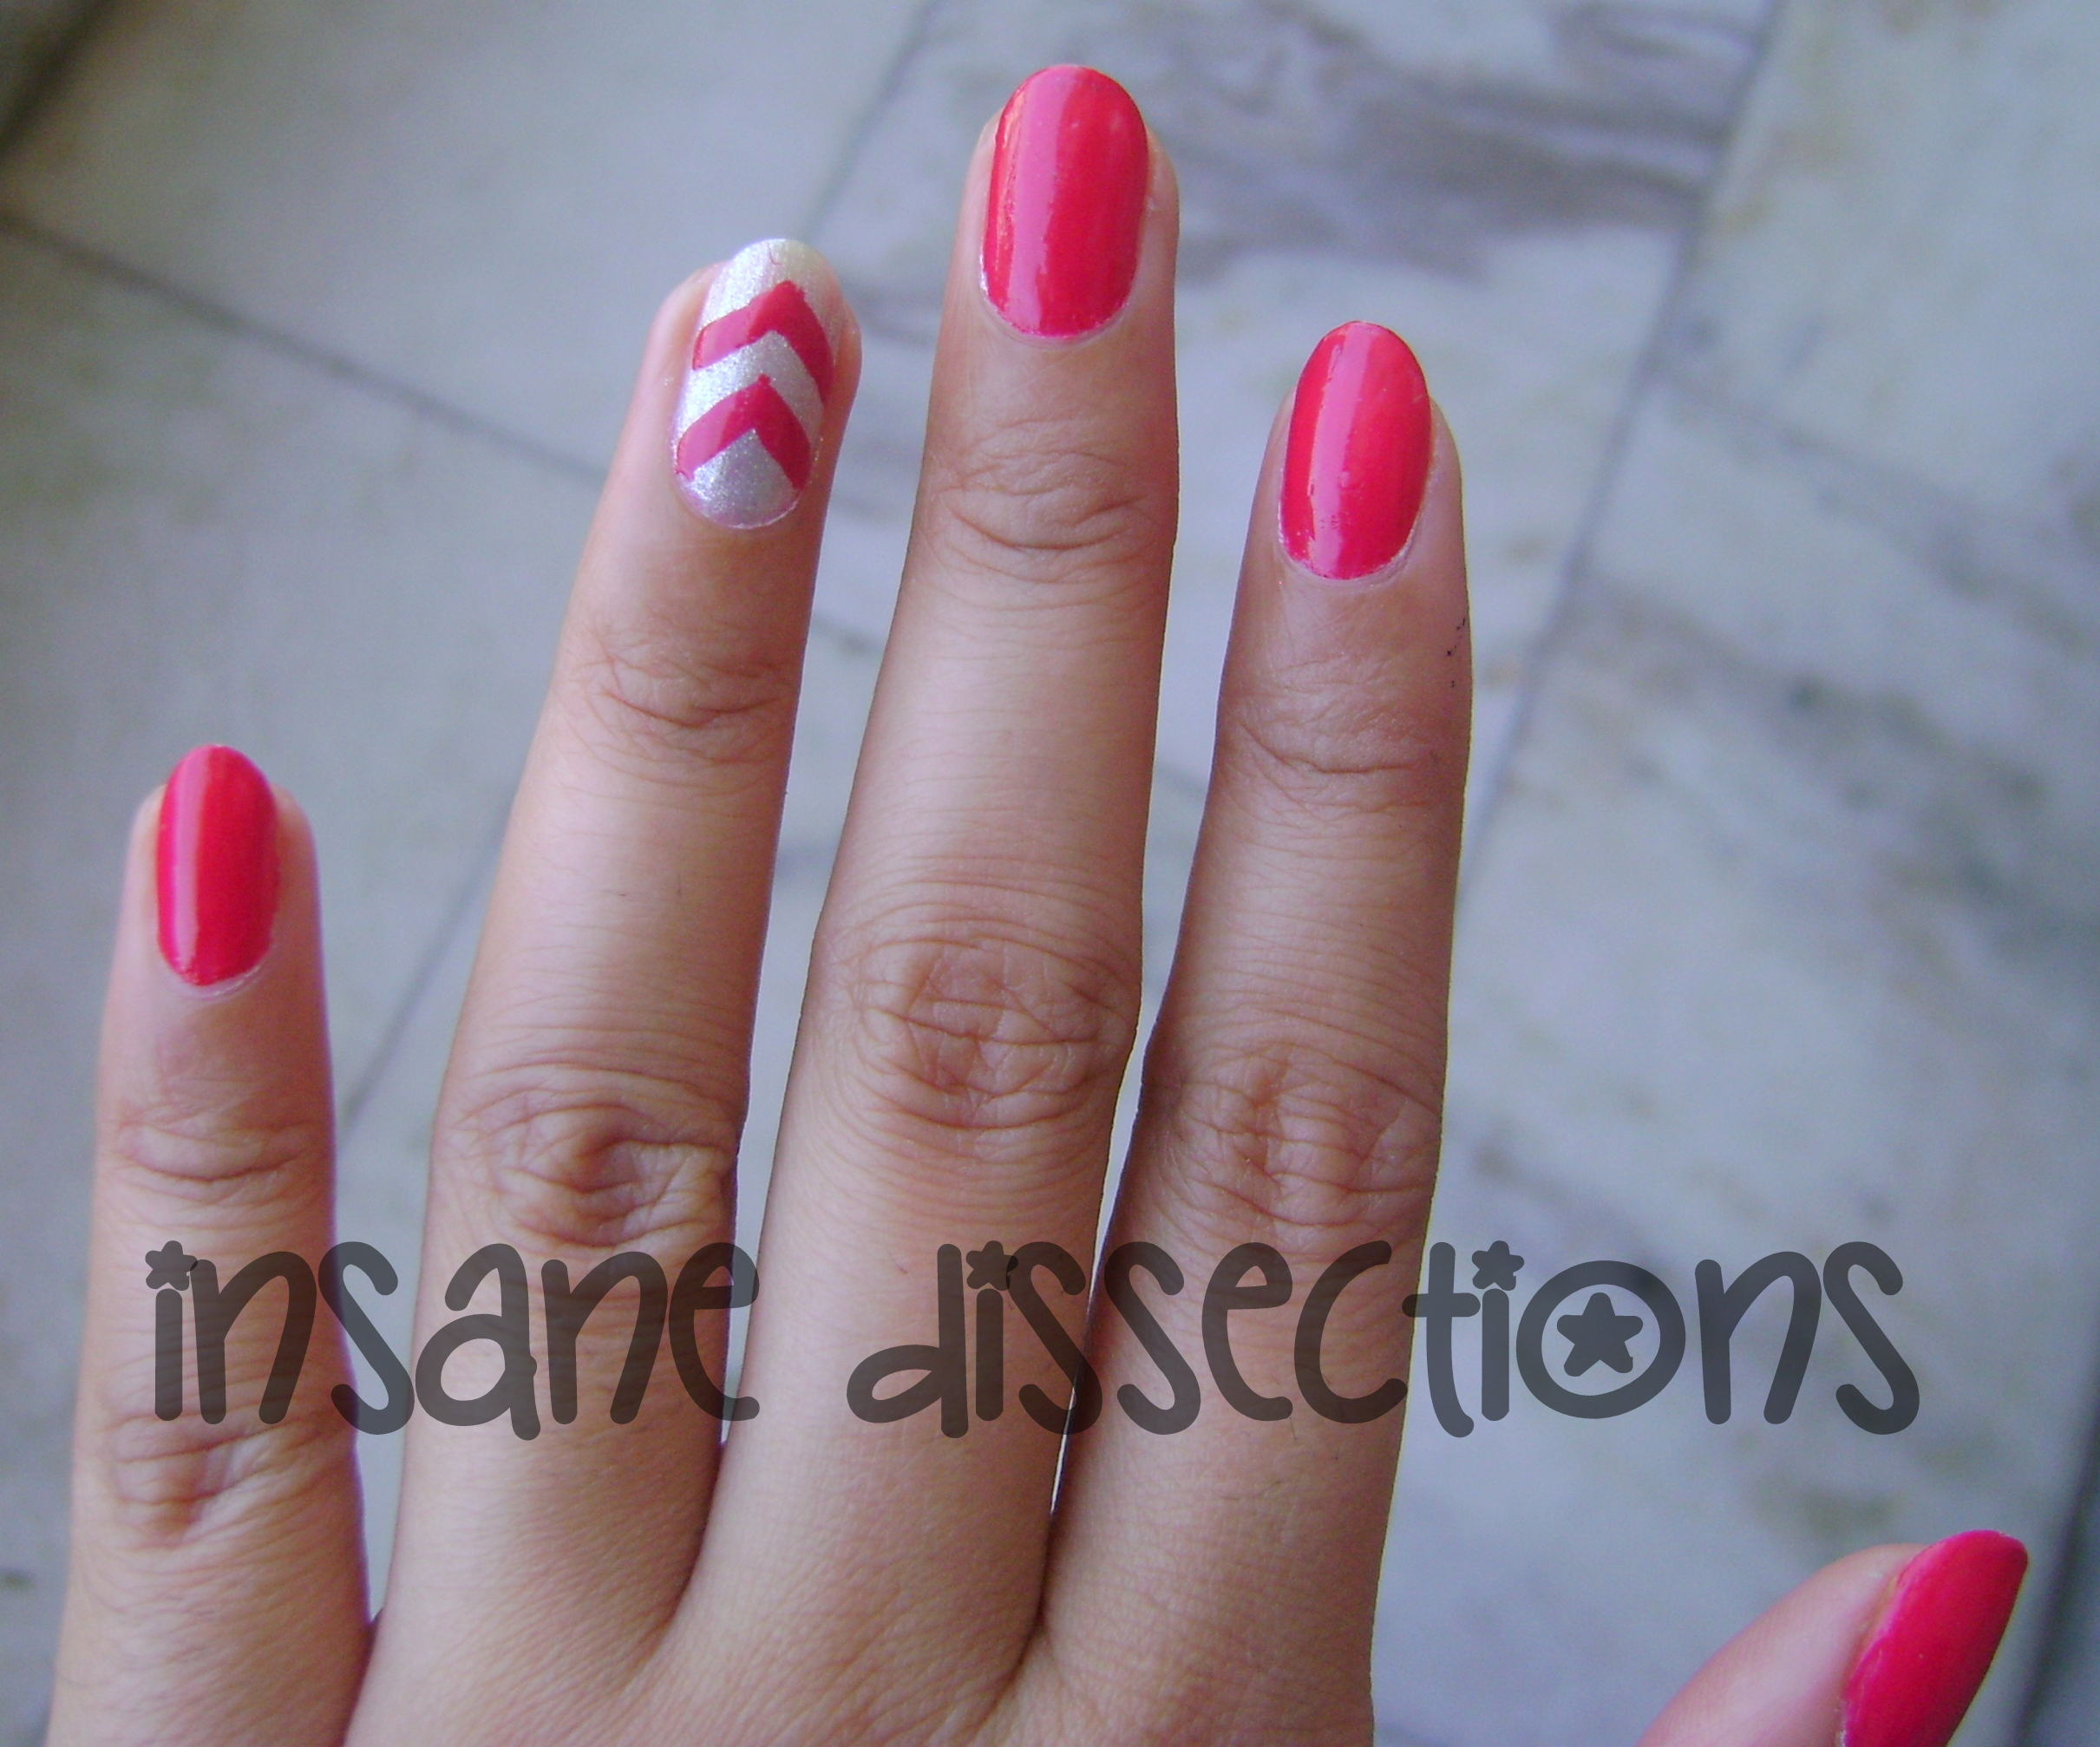 accent nail art | Insane Dissections